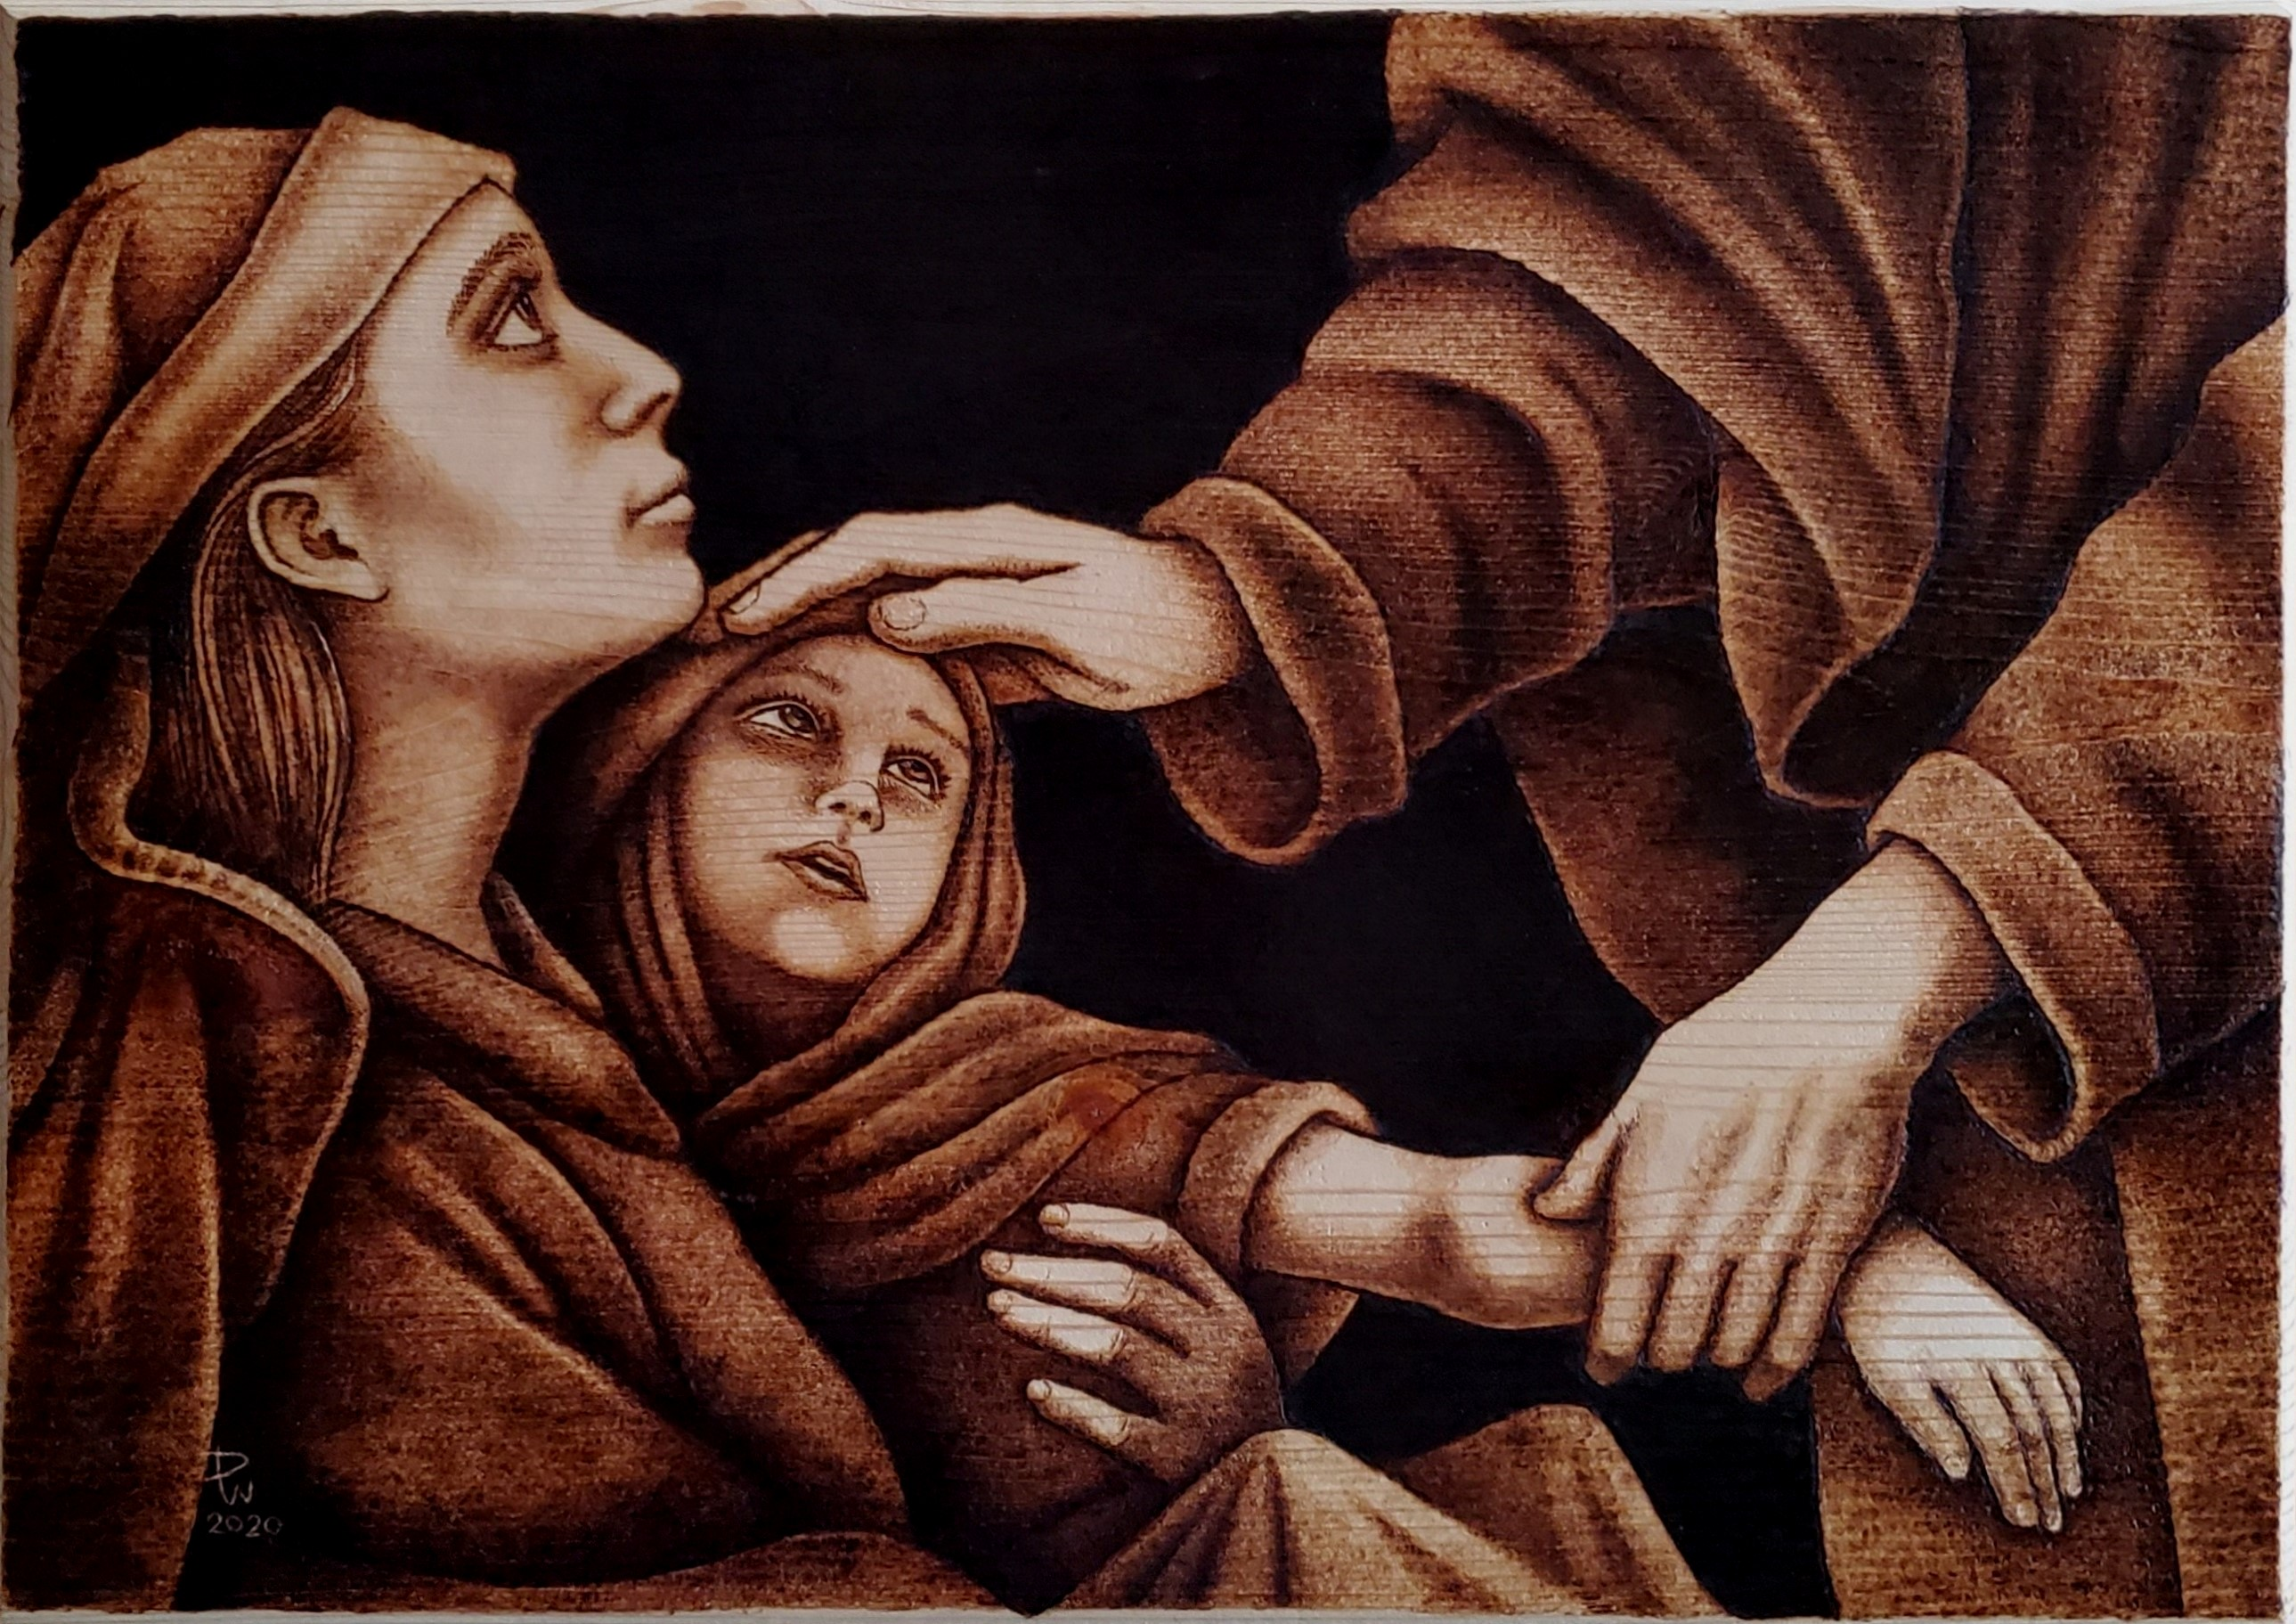 Woodburned image of Christ healing a young boy